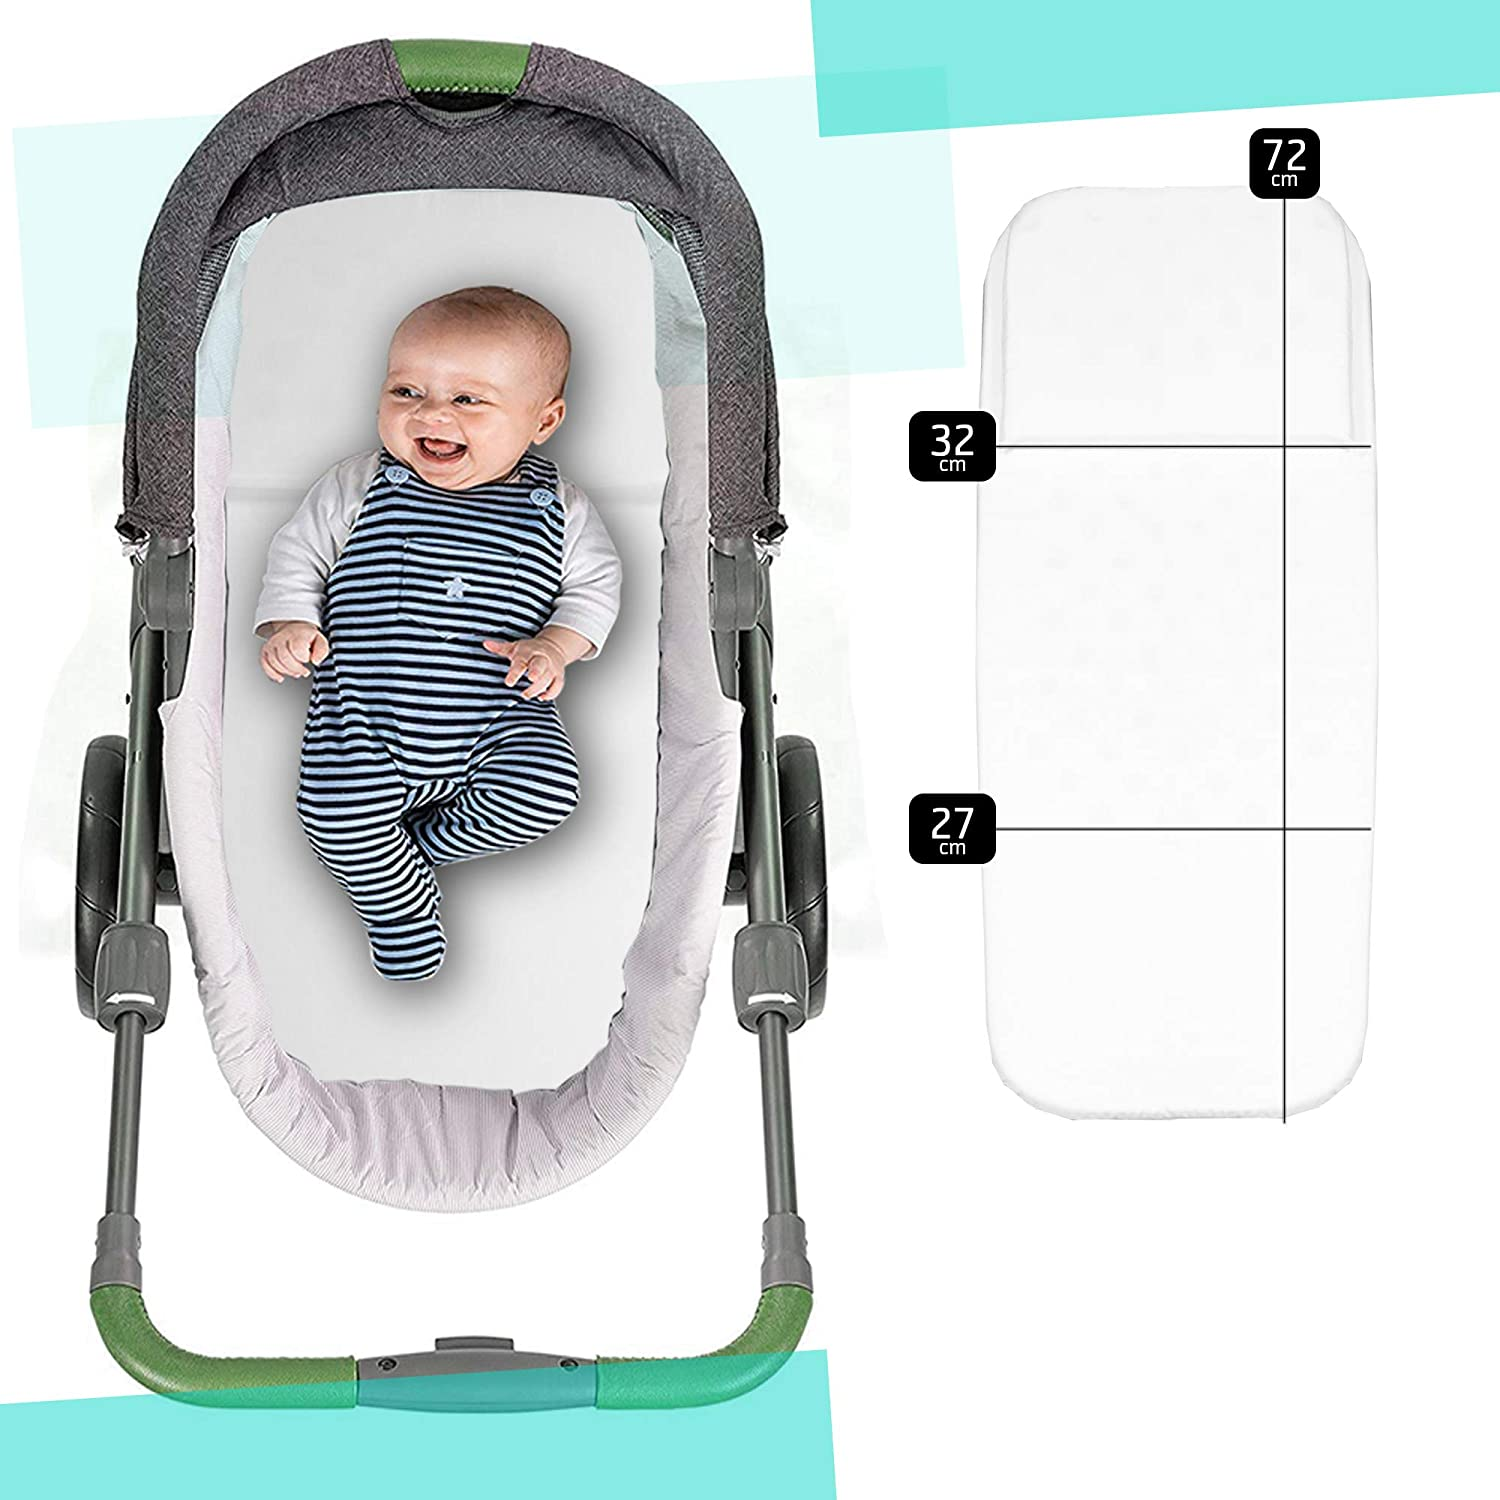 Universal Anti-Suffocation Mattress Made in Italy 72 x 29.5 cm Stroller Trio Baby Cot Cushion Carrycot Mattress Baby Cot Bed Baby Cot Baby Cot